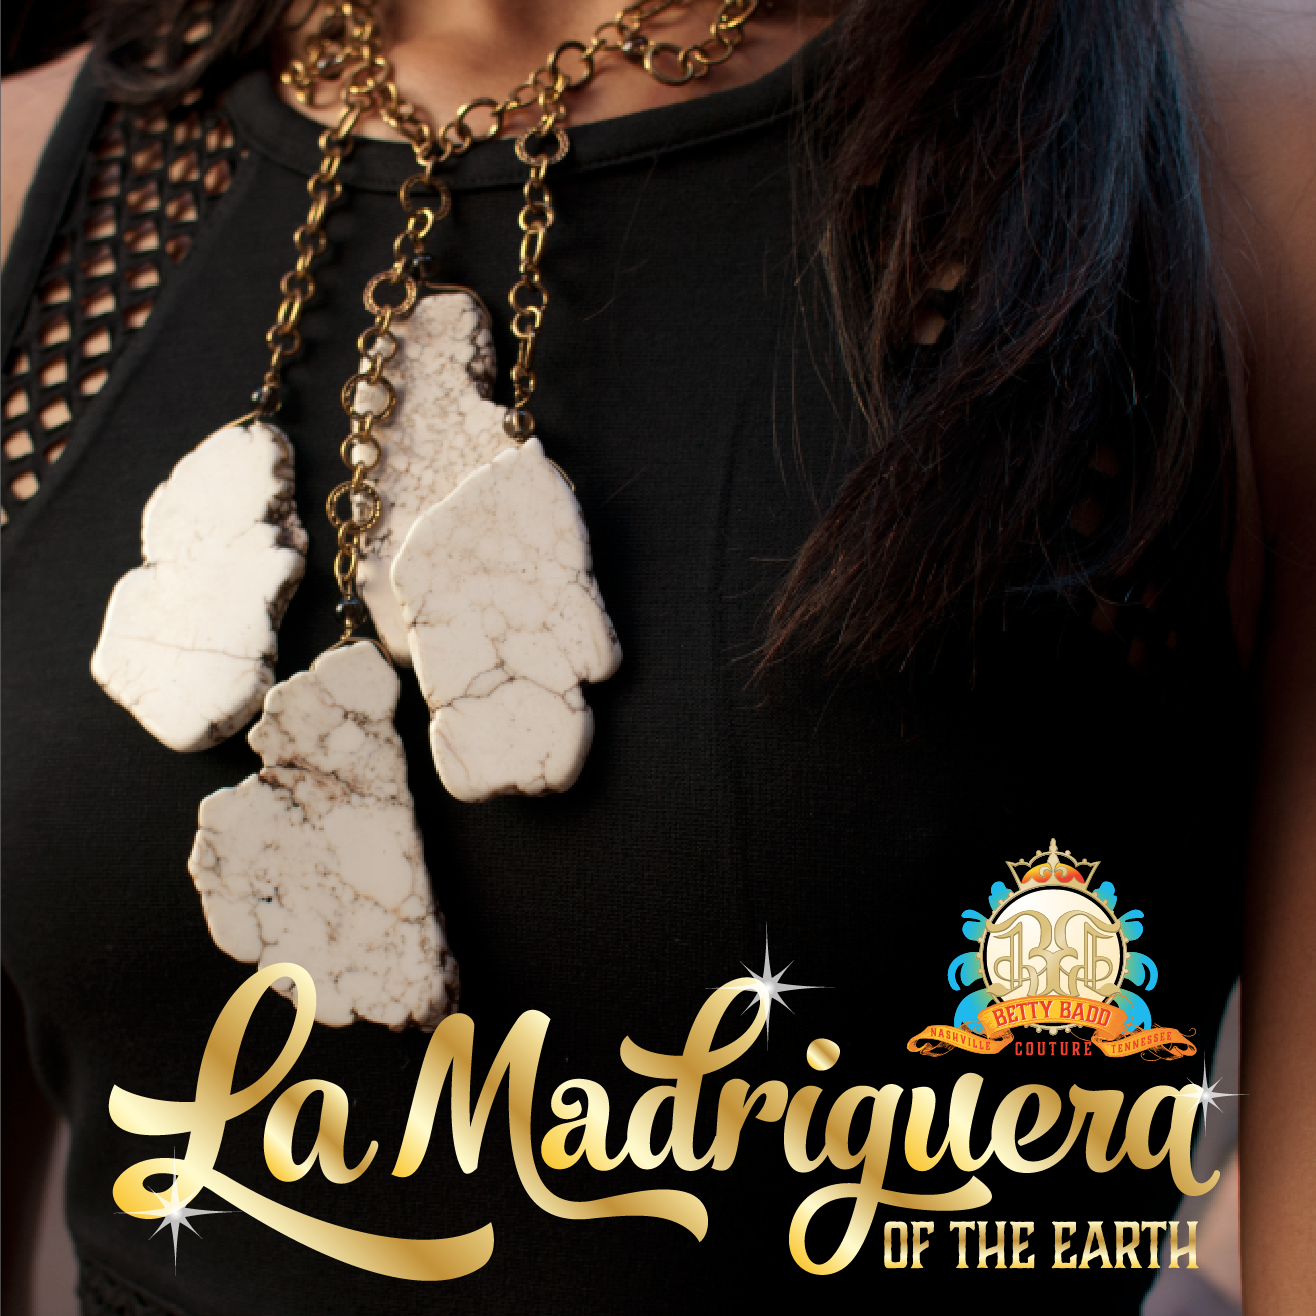 La Madriguera Collection from Betty Badd Couture